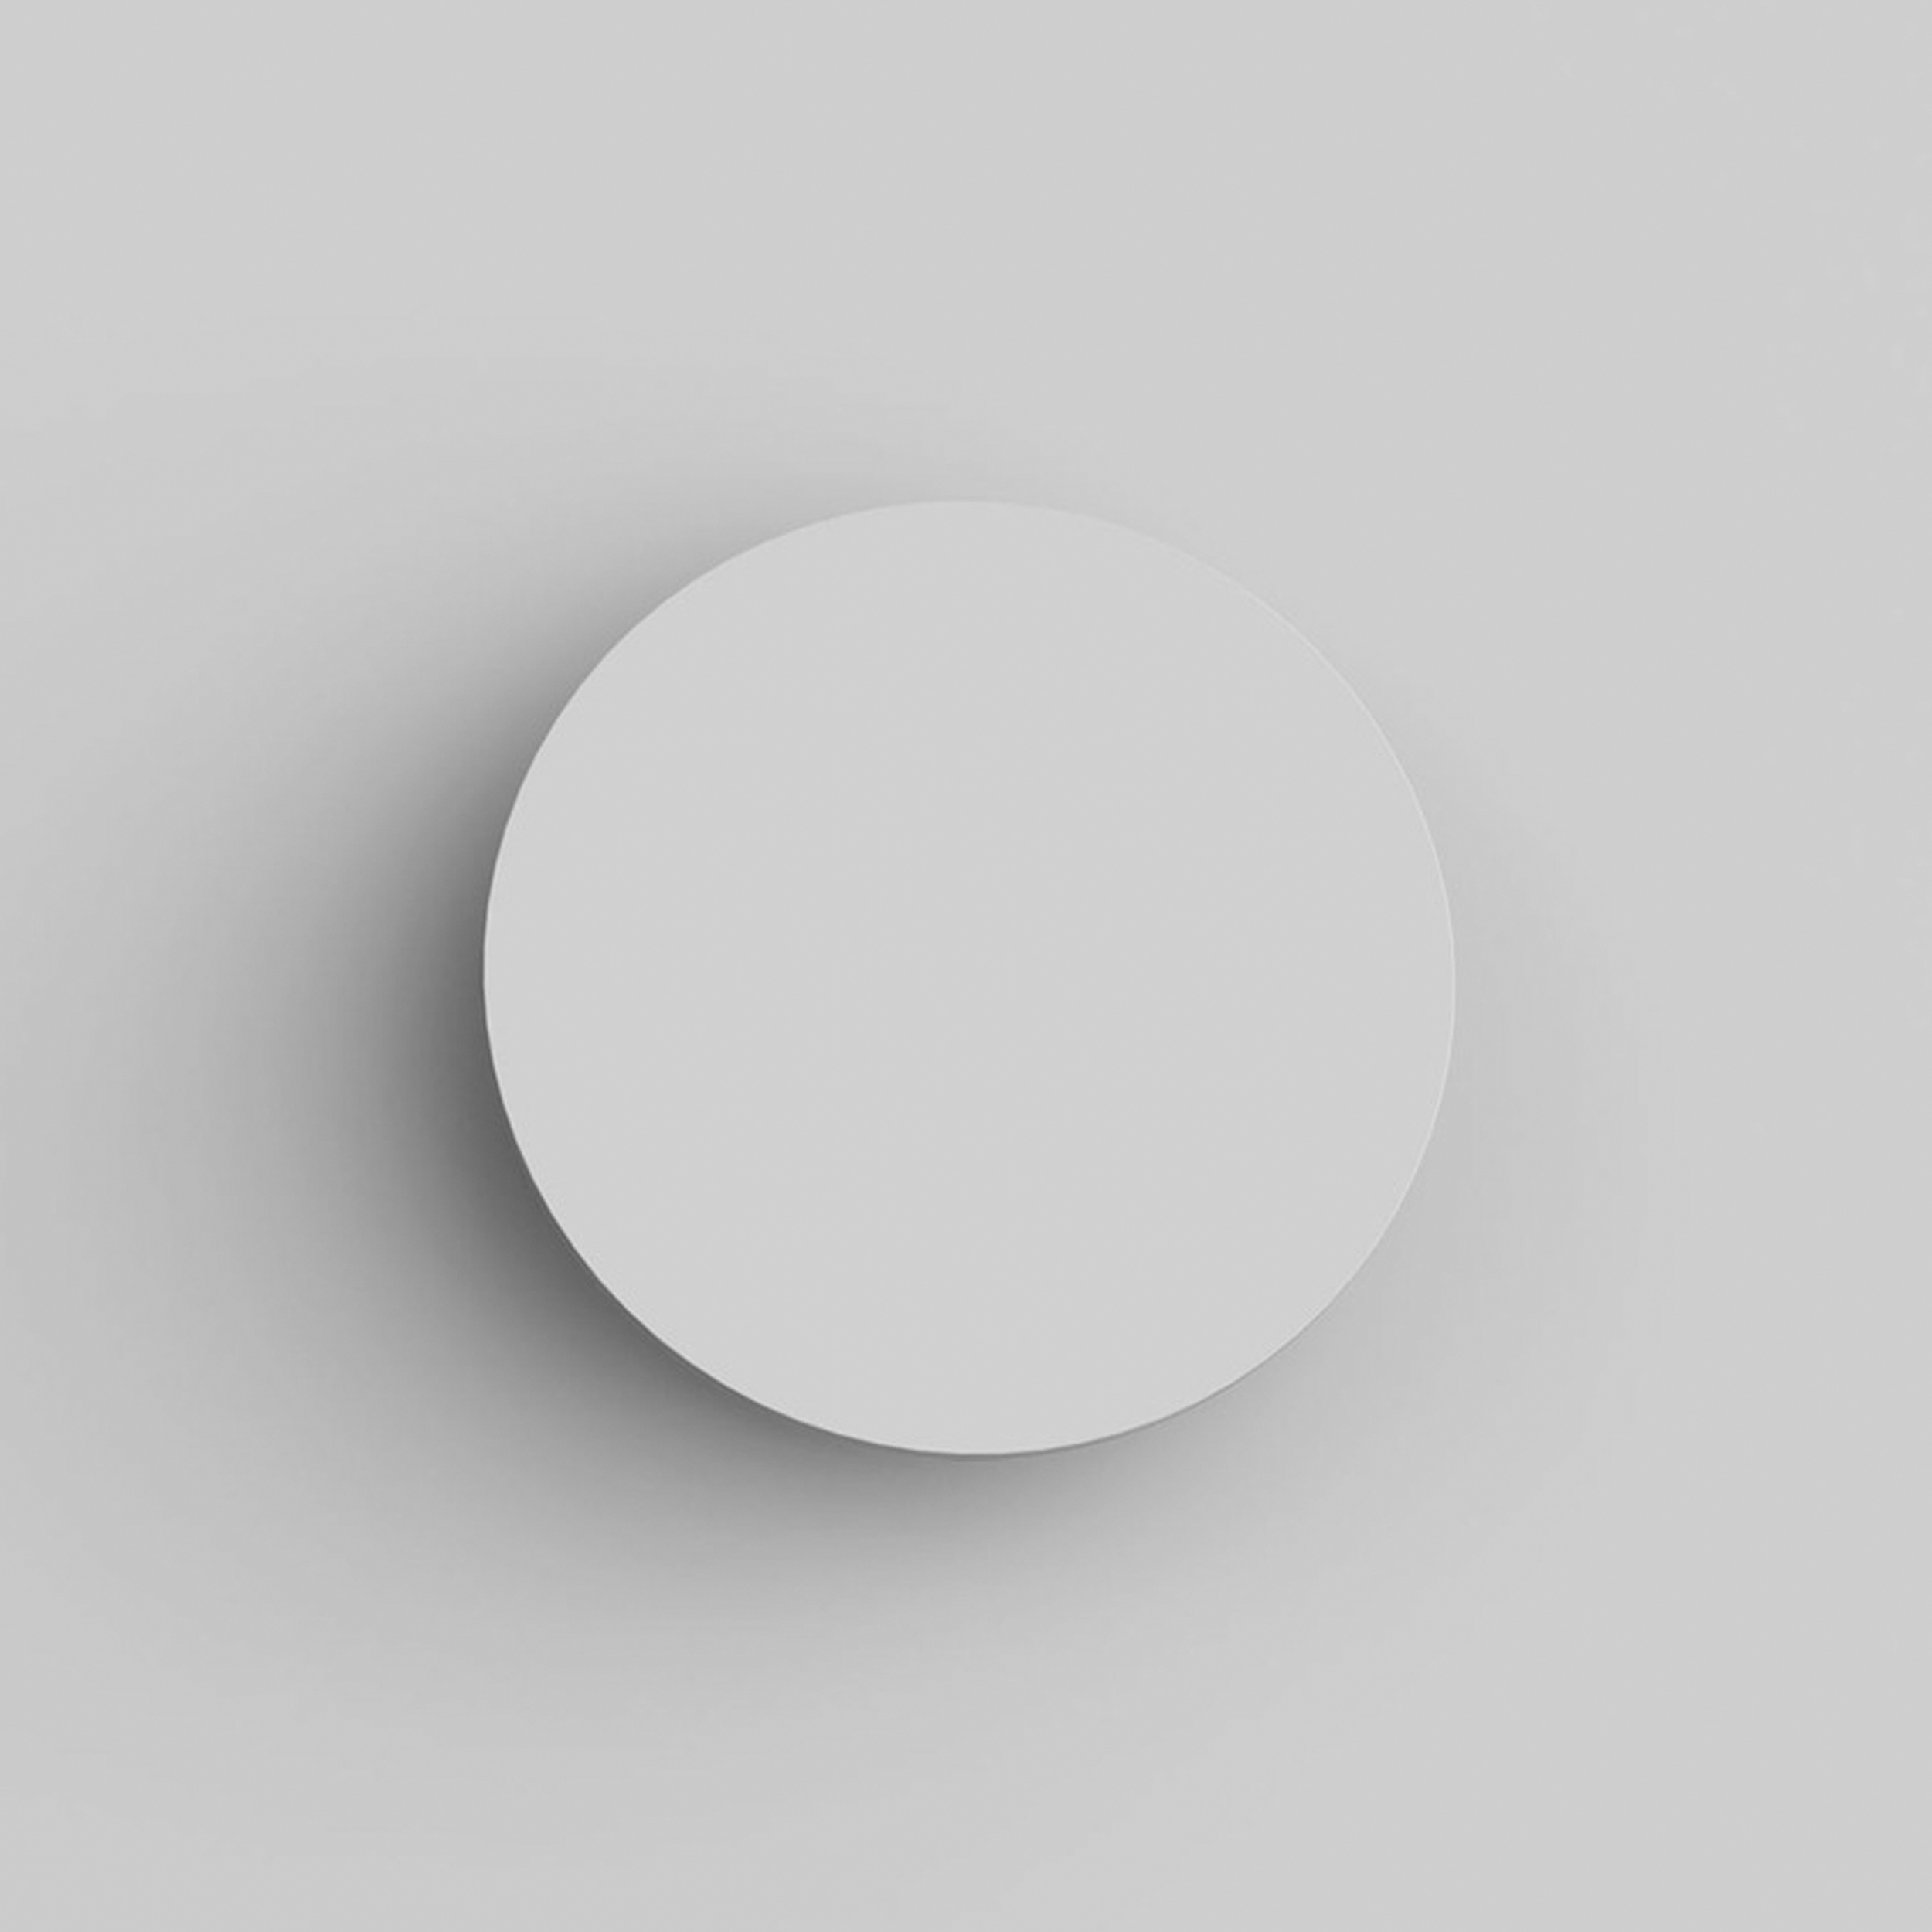 Astro Eclipse Round 250 Wall Light Plaster B